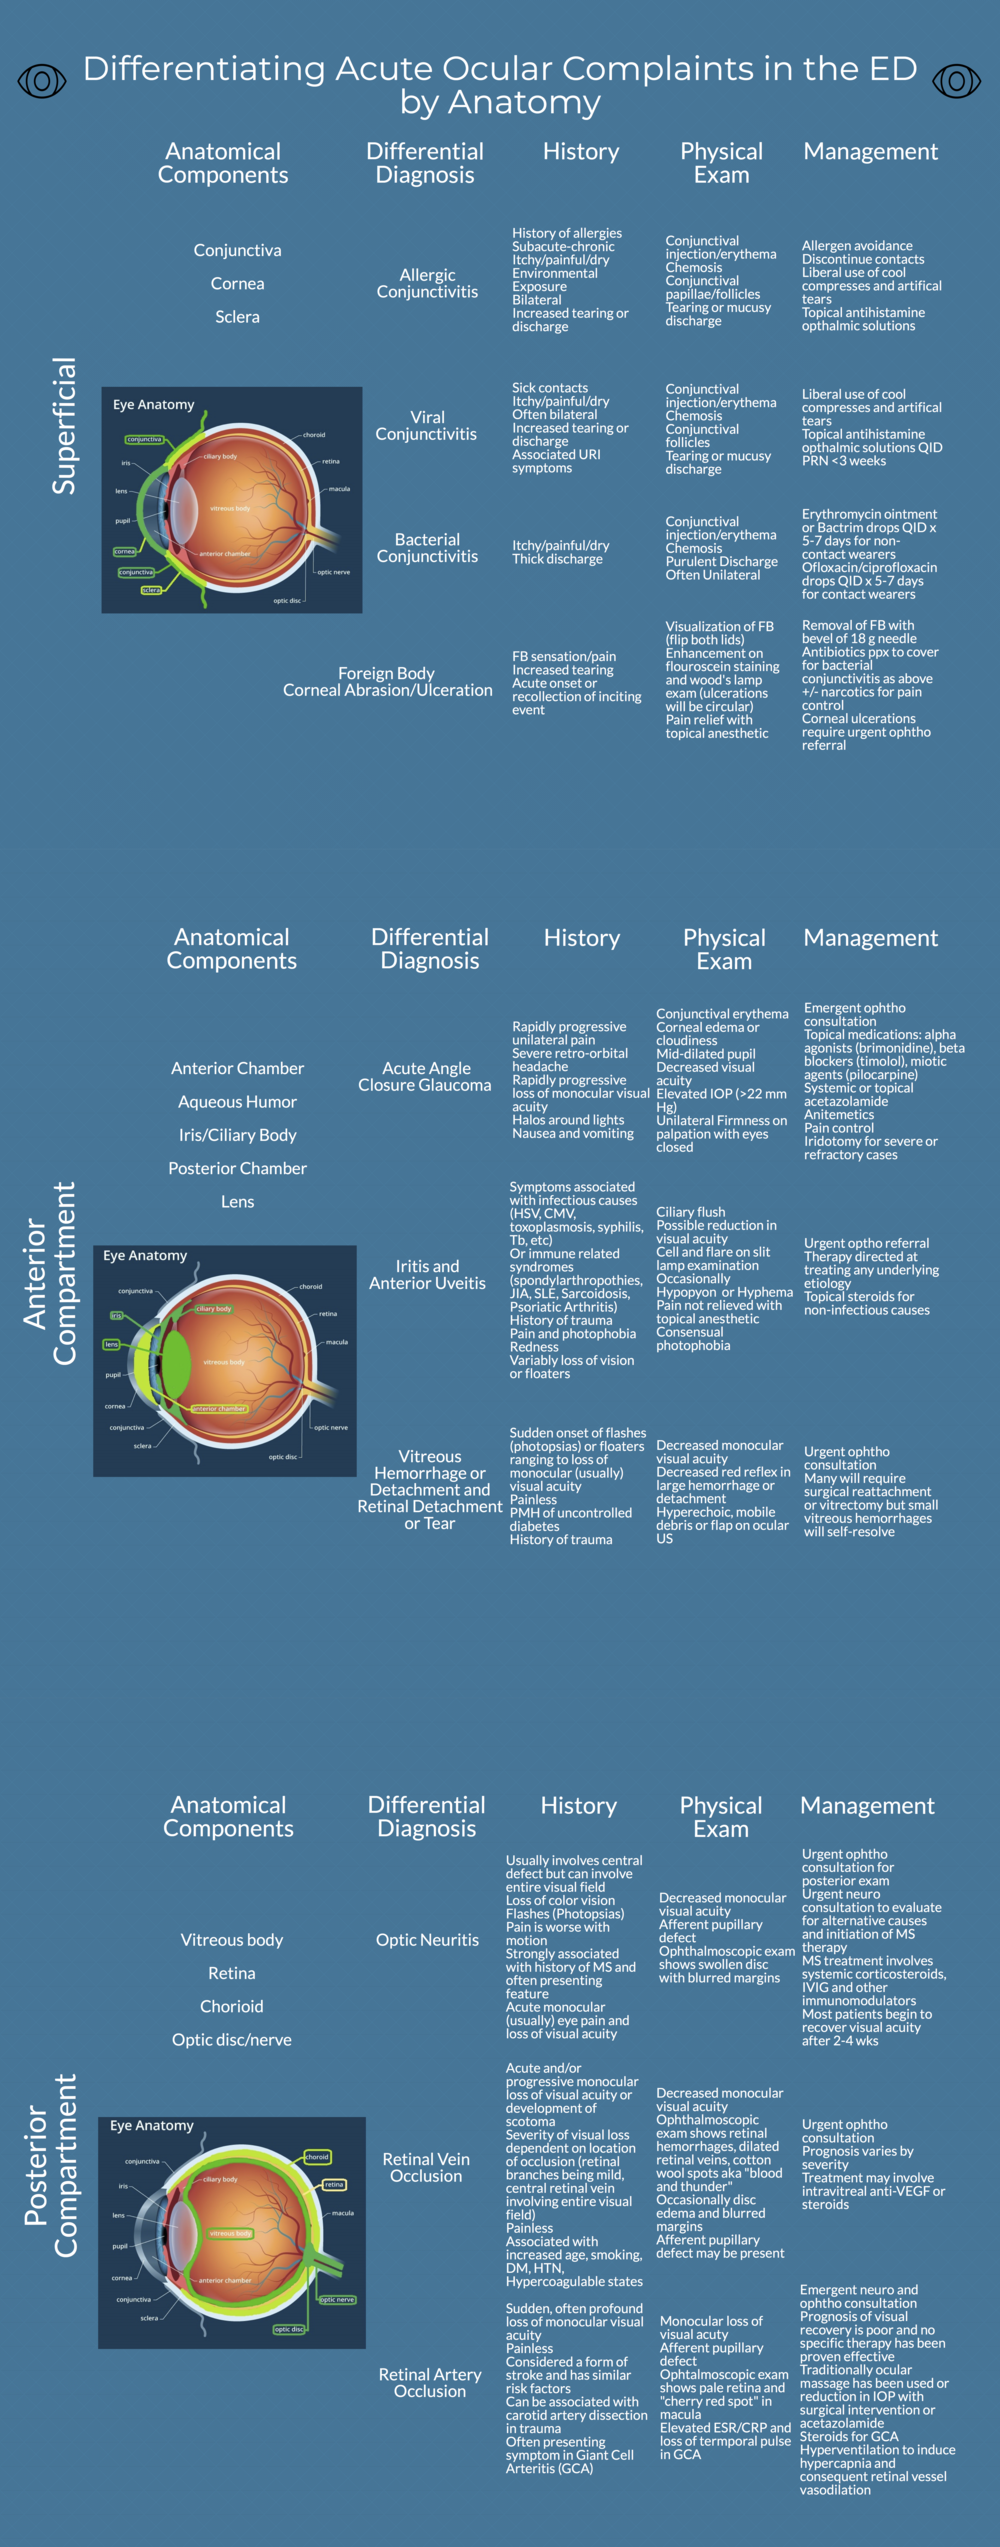 Ocular Complaints By Anatomy new format (1).png